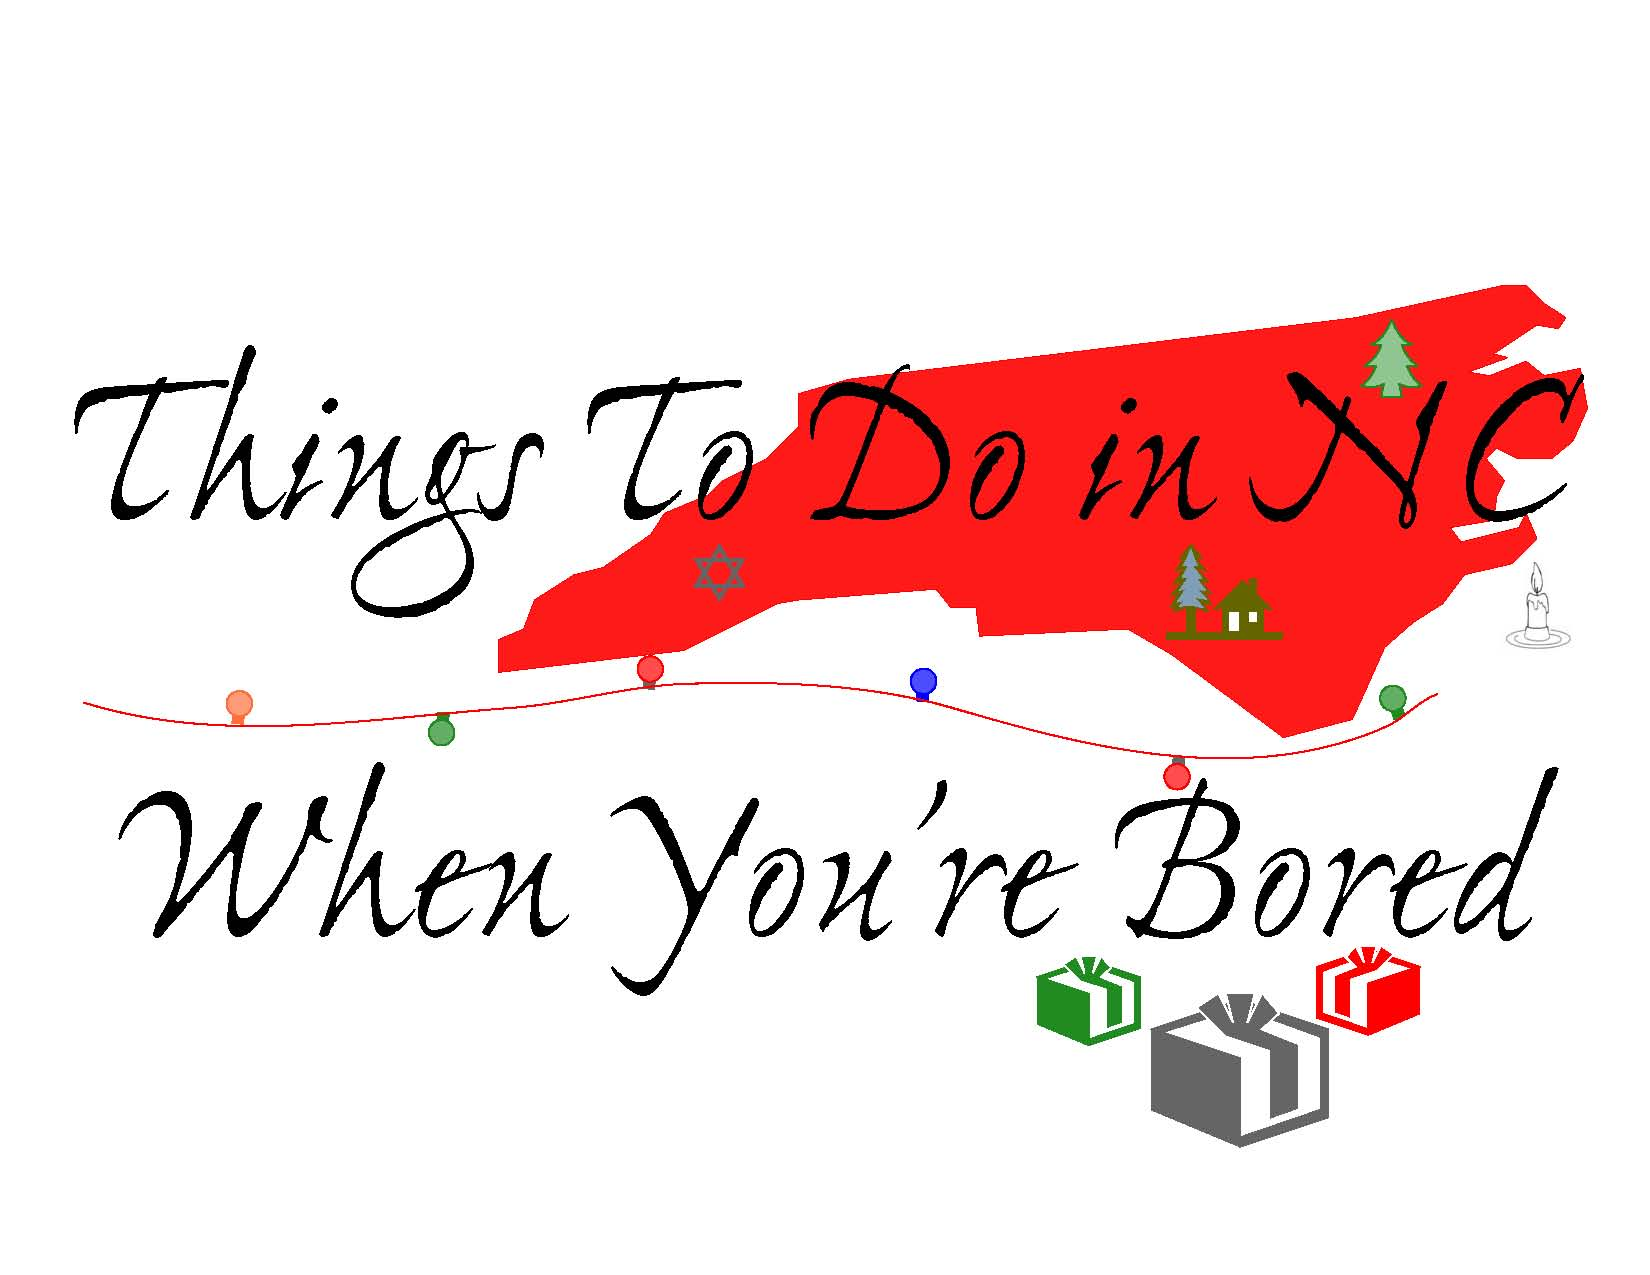 Yahoo Dunn North Carolina Christmas Parade 2020 Things To Do in NC When You're Bored   Dec. 12 15, 2019   The Grey